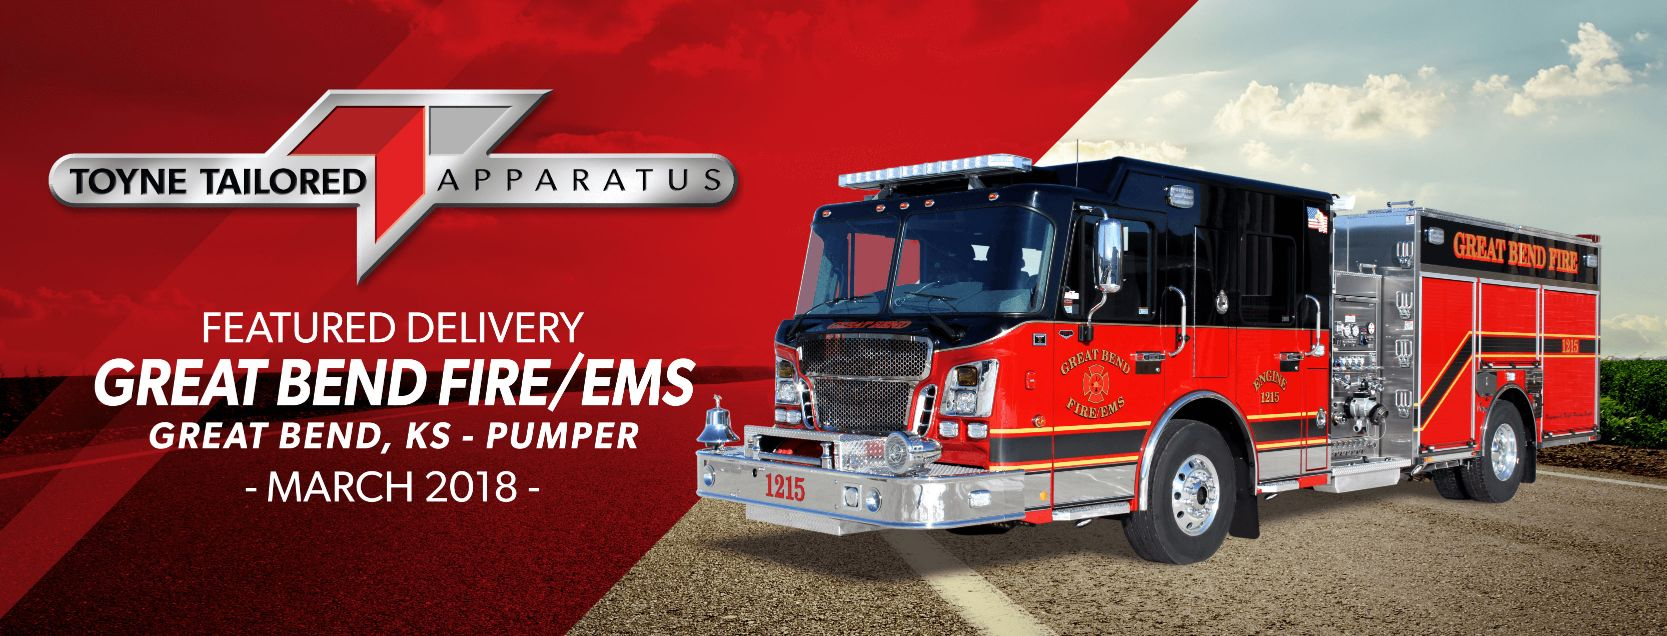 Featured Delivery Great Bend Fire/EMS<